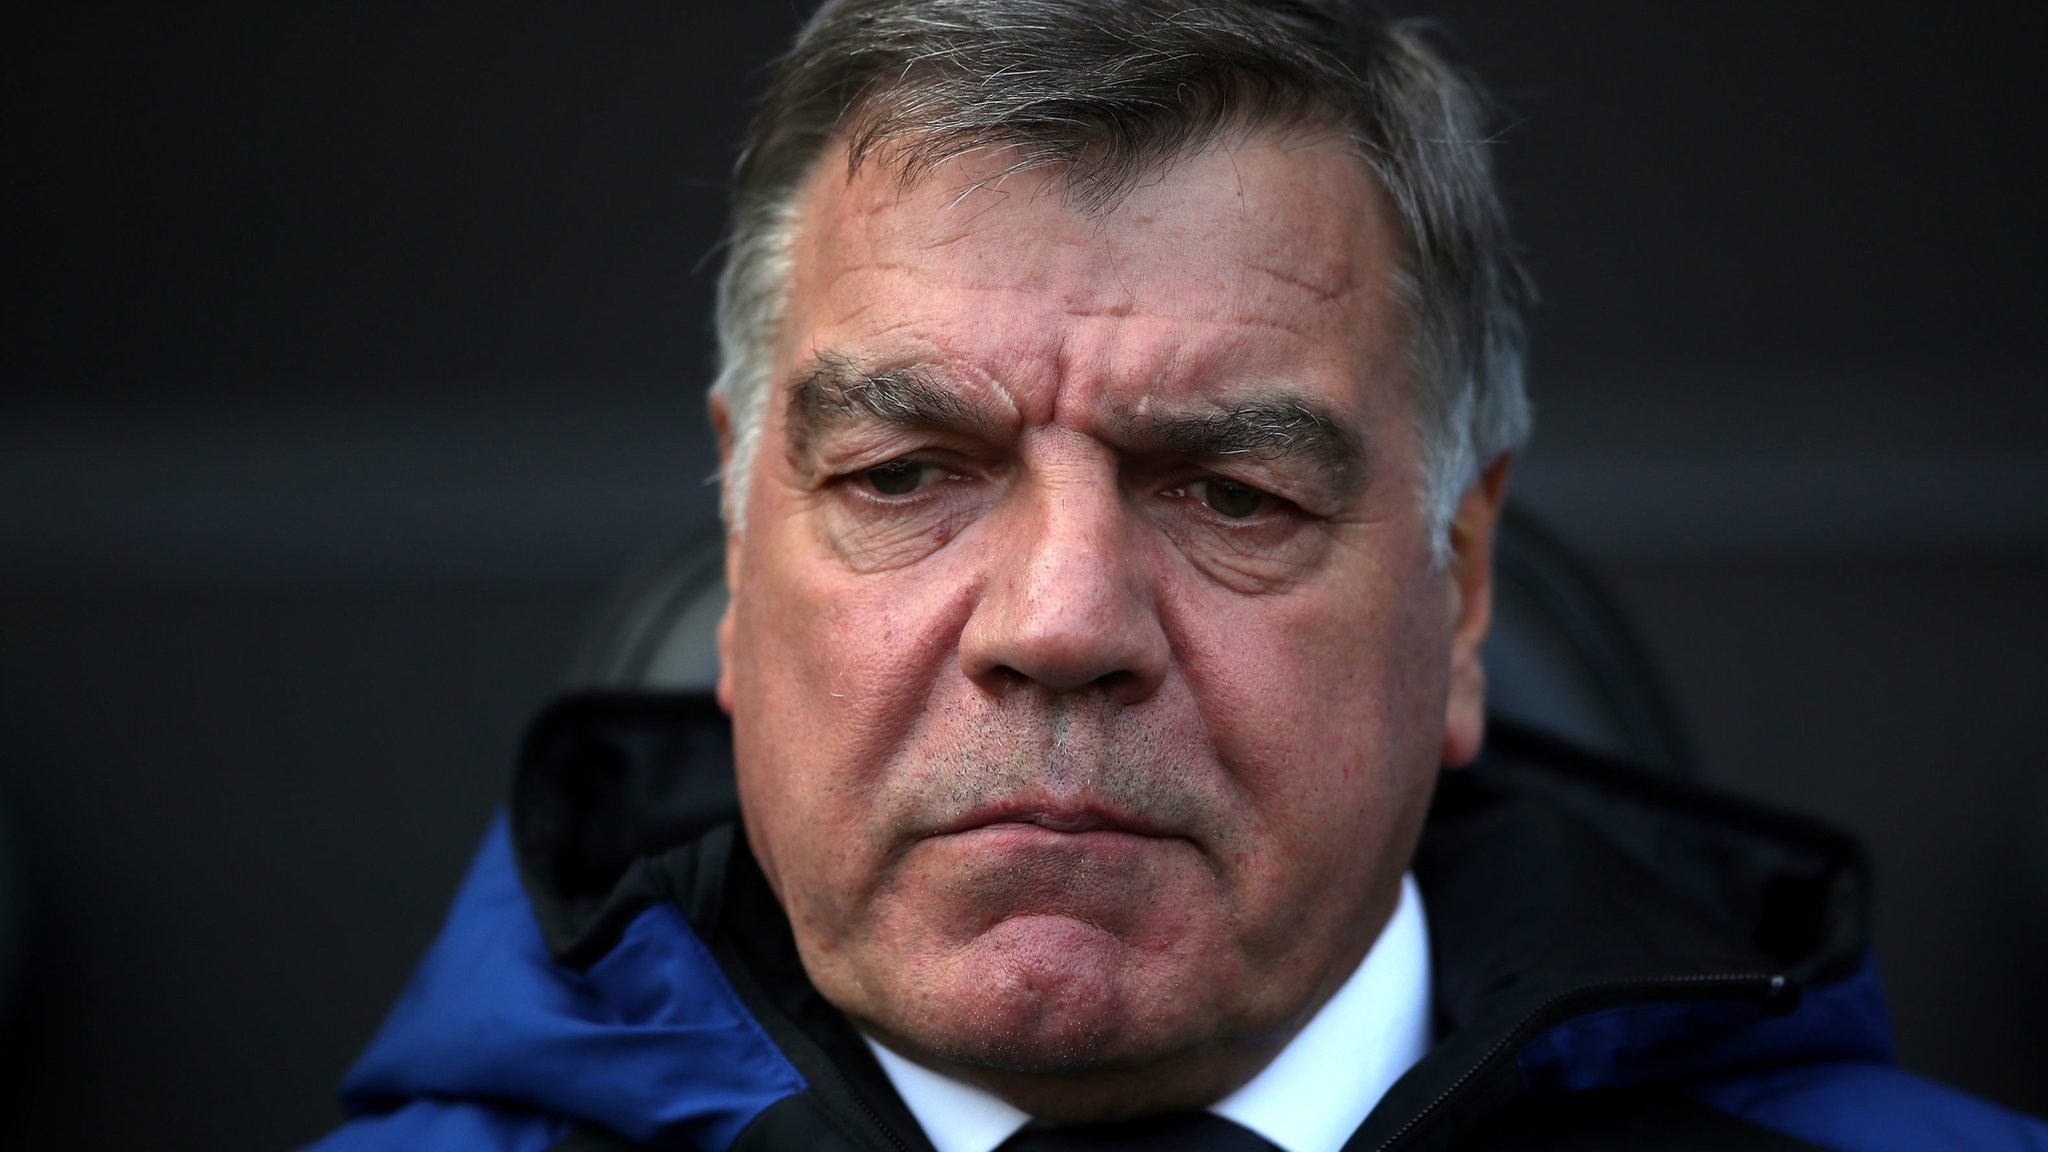 Sam Allardyce: Former Everton boss says he knew he would be sacked